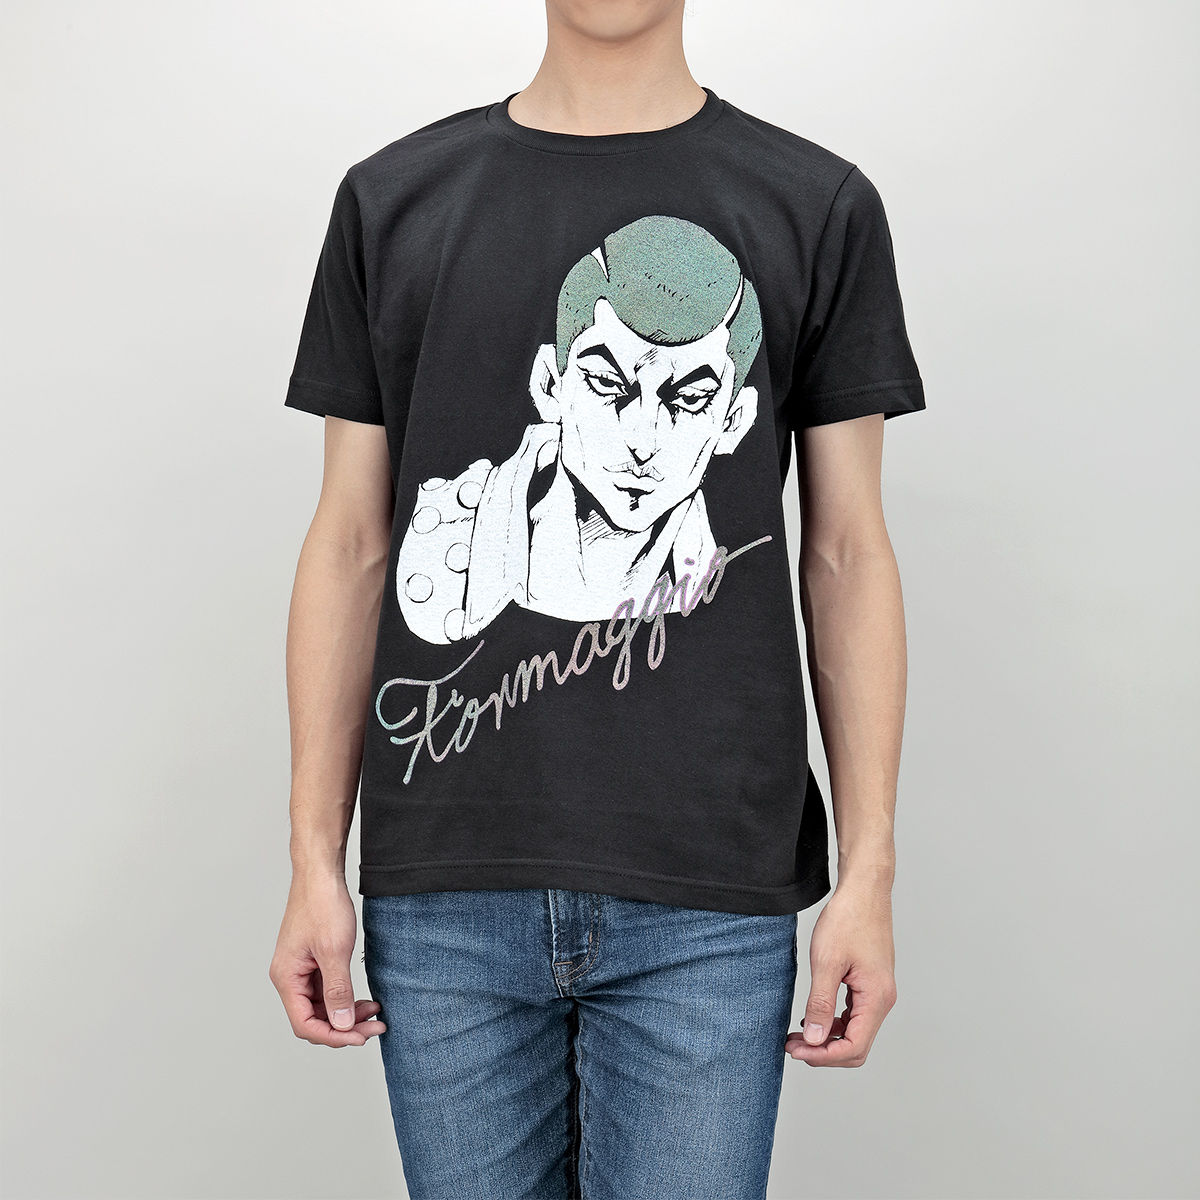 JoJo's Bizarre Adventure: Golden Wind T-shirt Collection (Hitman Team)